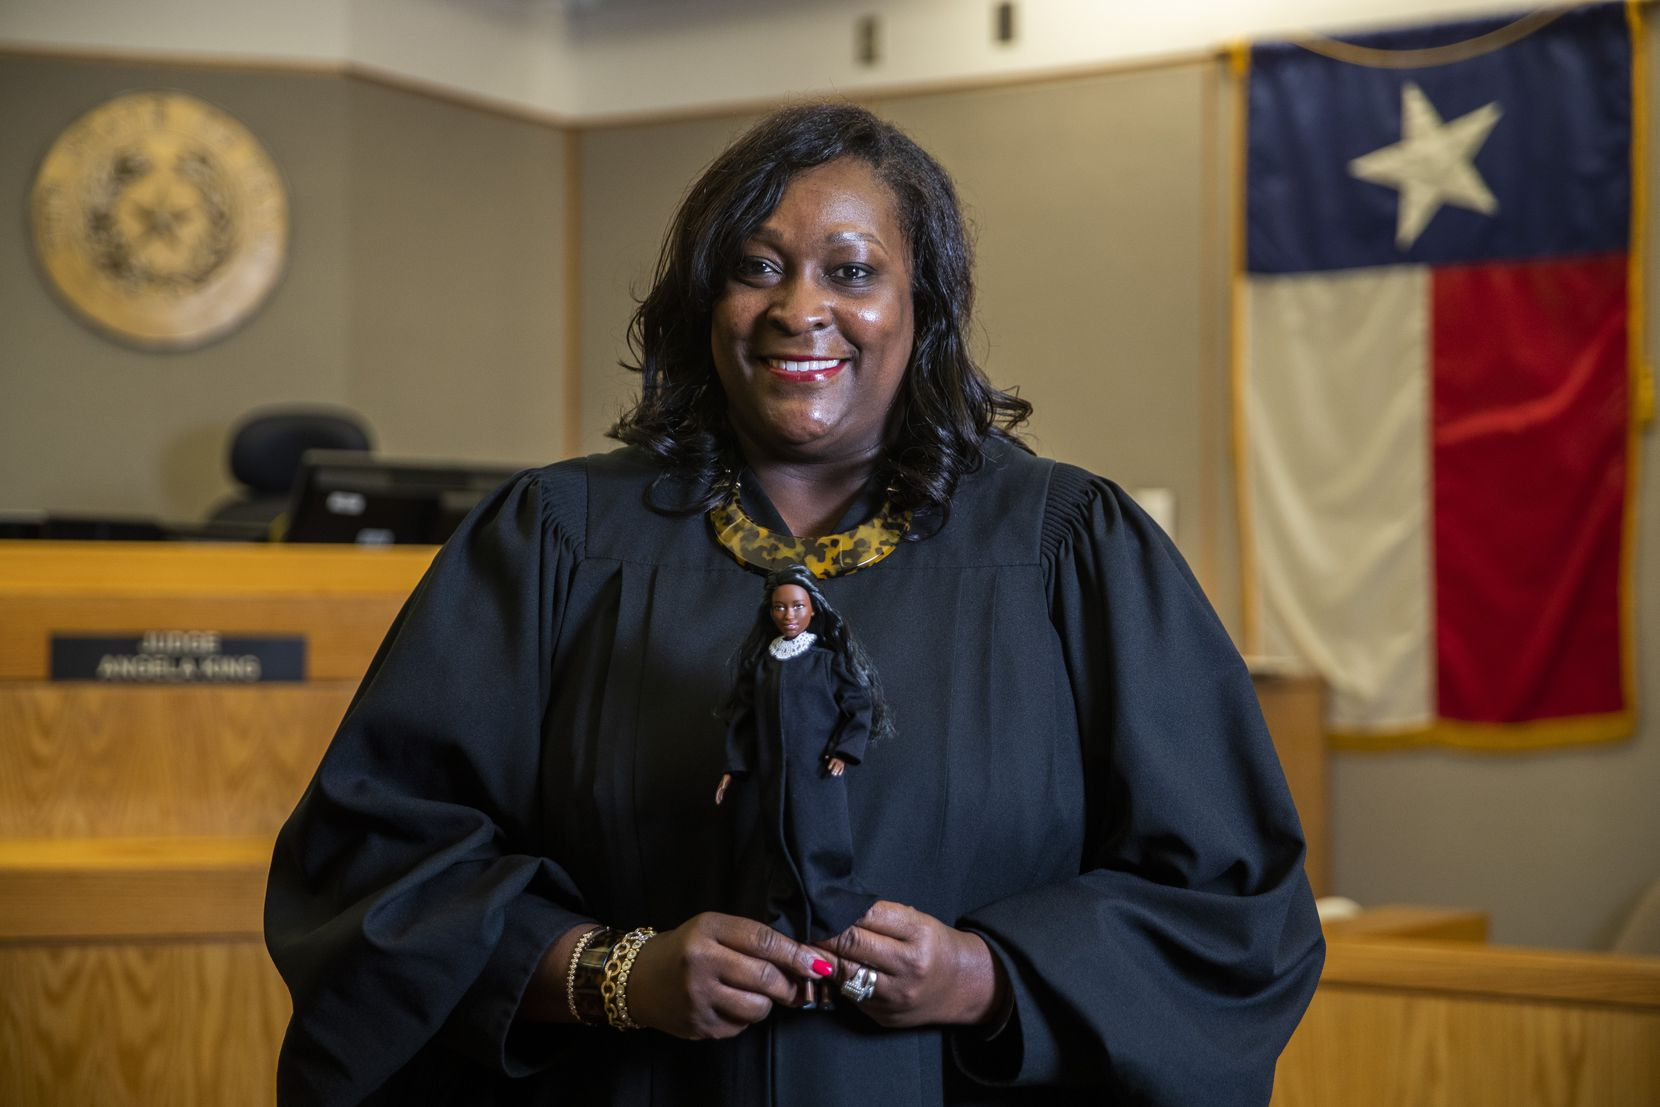 Dallas County Criminal Court Judge Angela King poses for a portrait with a Judge Barbie doll in her courtroom on Monday, Nov. 11, 2019, at Frank Crowley Courts Building in Dallas. (Ashley Landis/The Dallas Morning News)